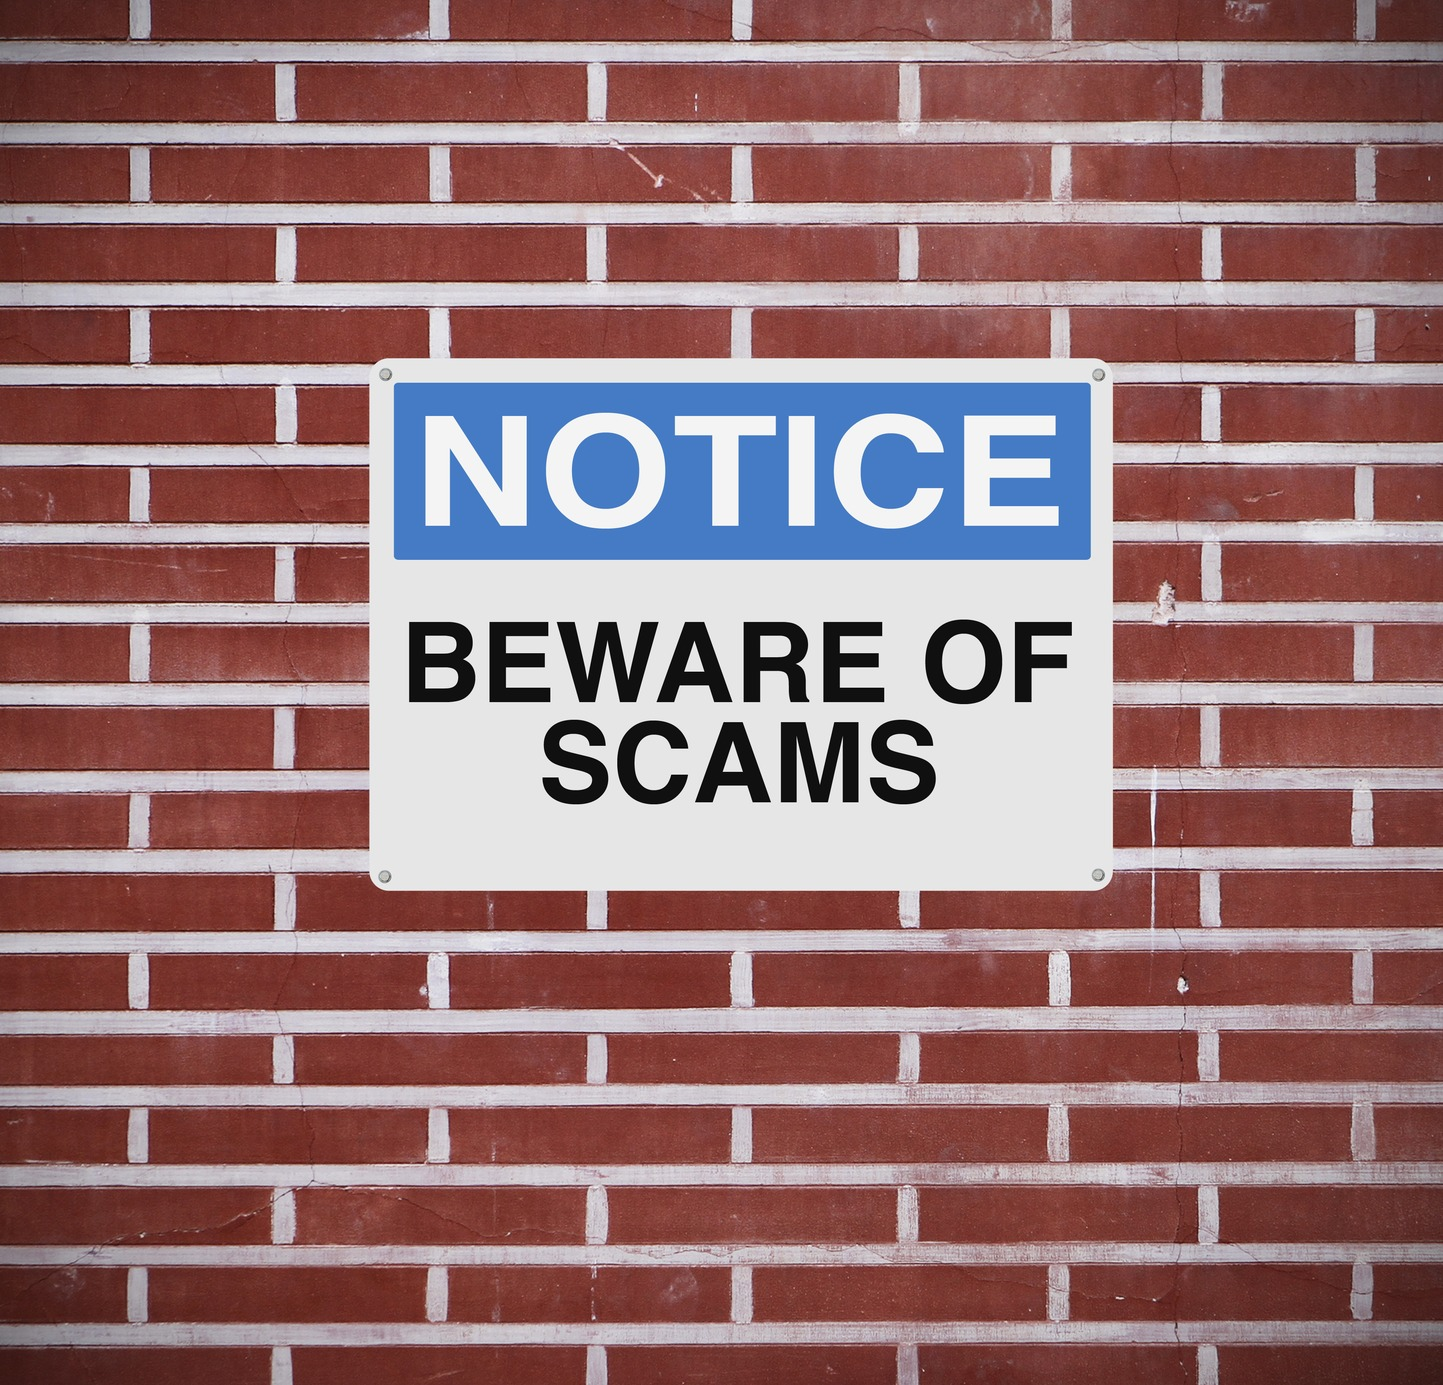 meter_bypass_device_scam